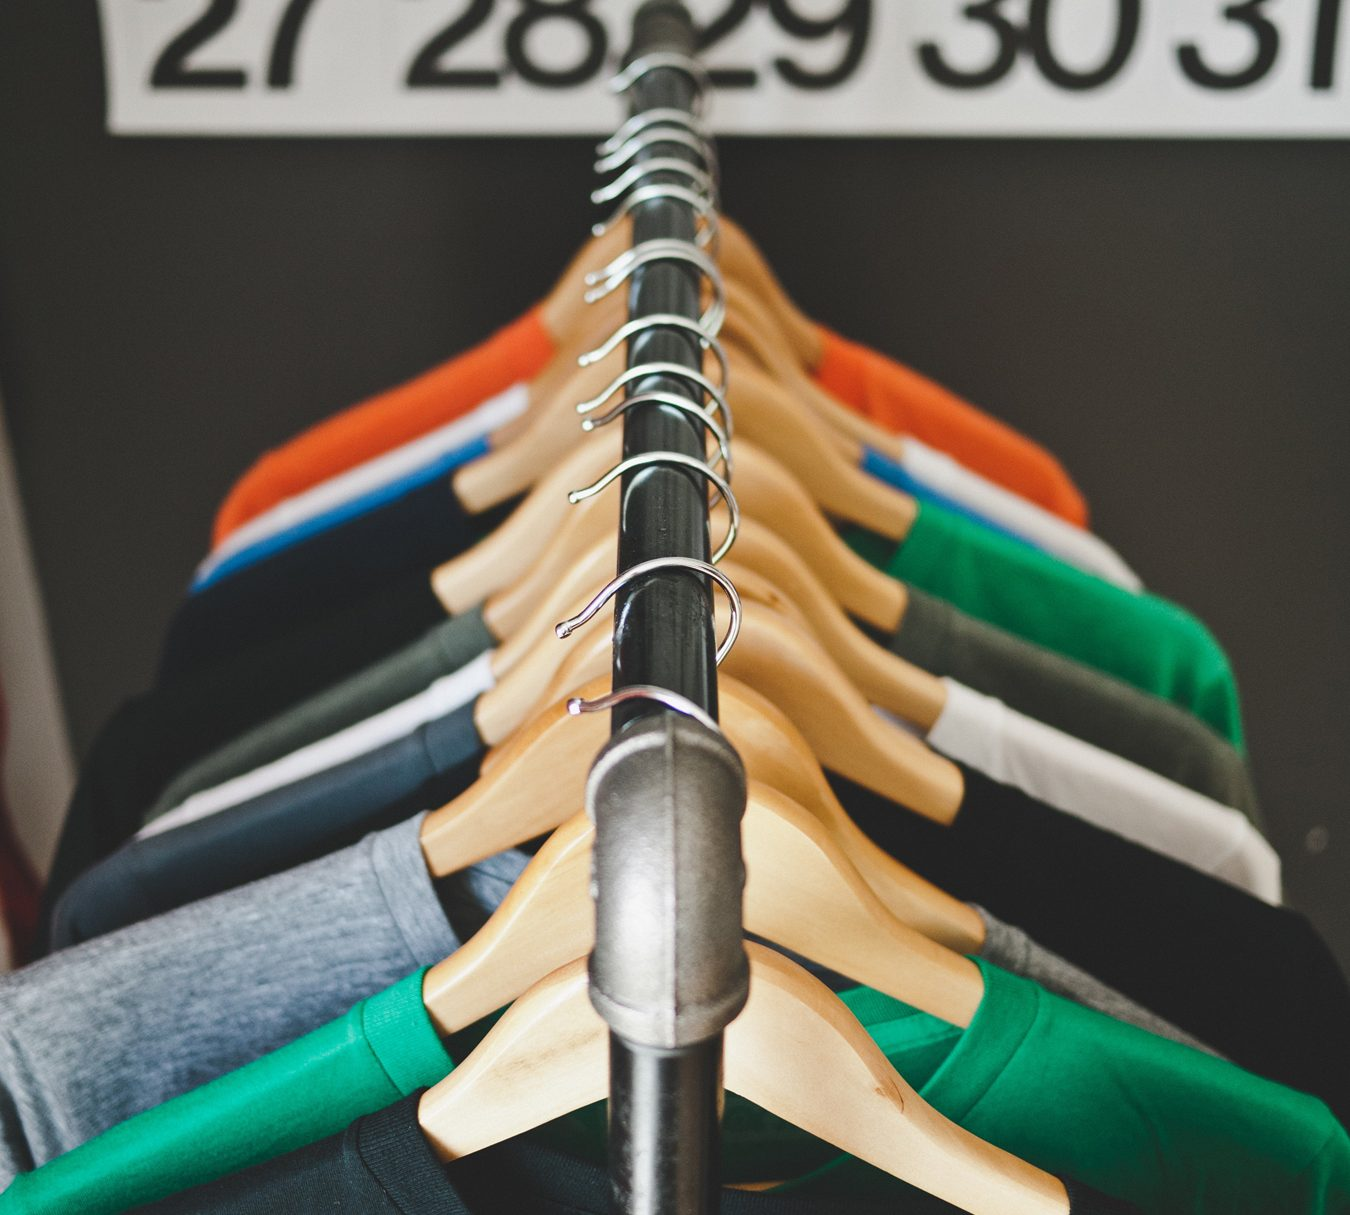 sweaters without toxic chemicals